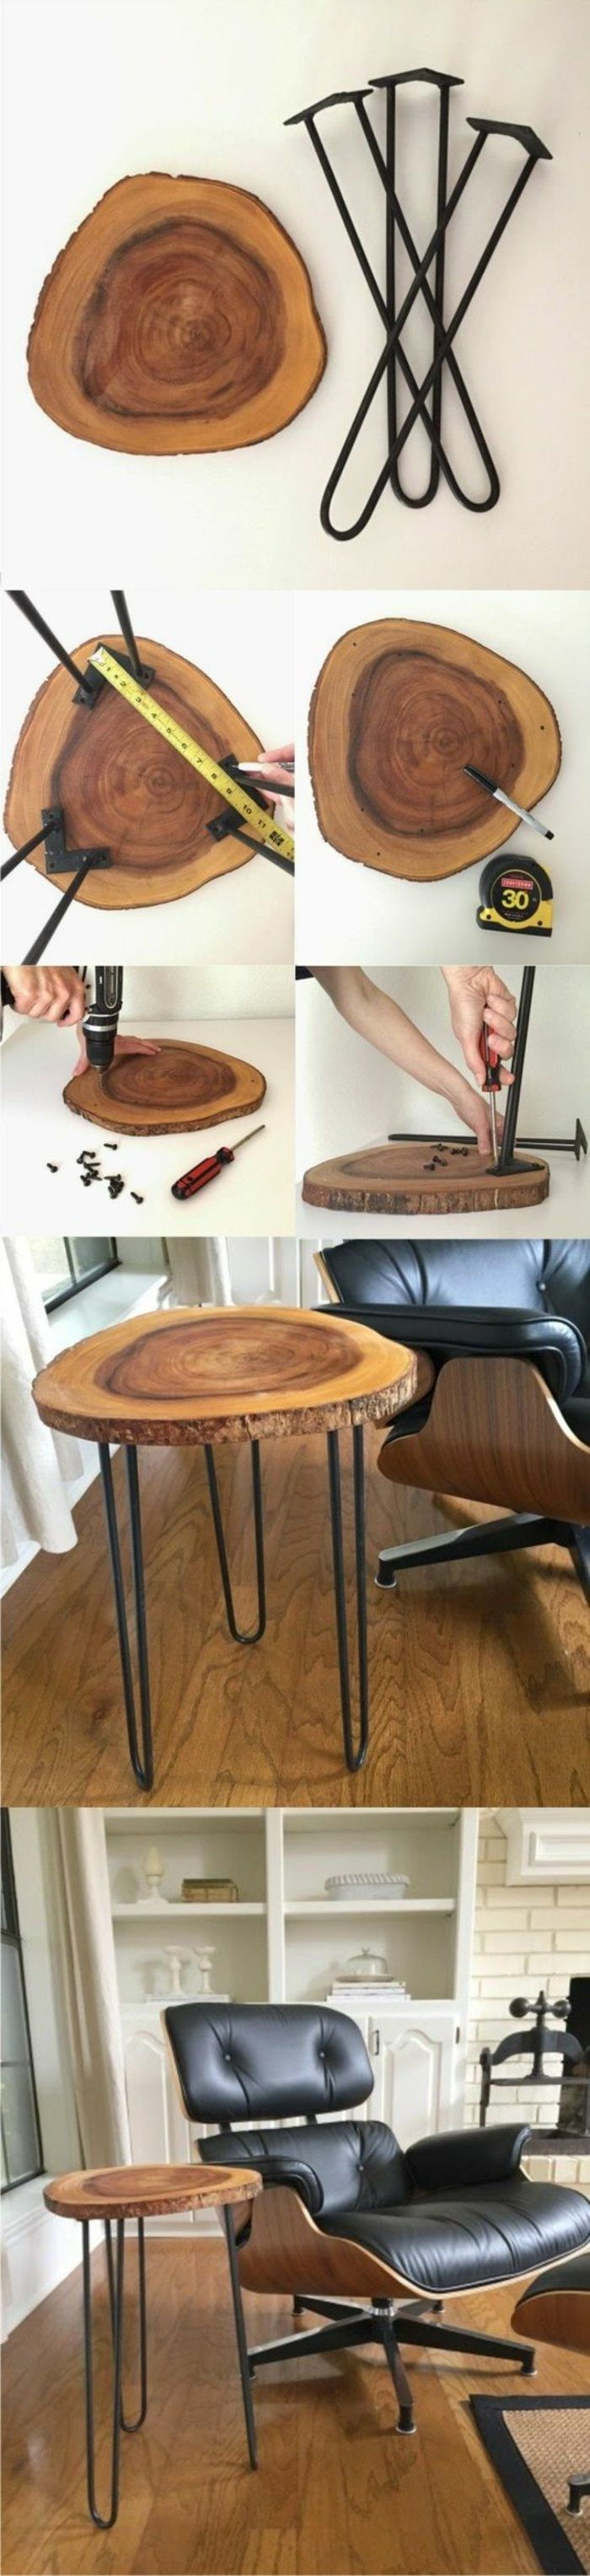 ▷ 1001+ original and cool crafting ideas for inspiration  diy chair wooden disc and metal legs, armchair The post ▷ 1001+ original and cool crafting ideas for inspiration appeared first on Woman Casual.